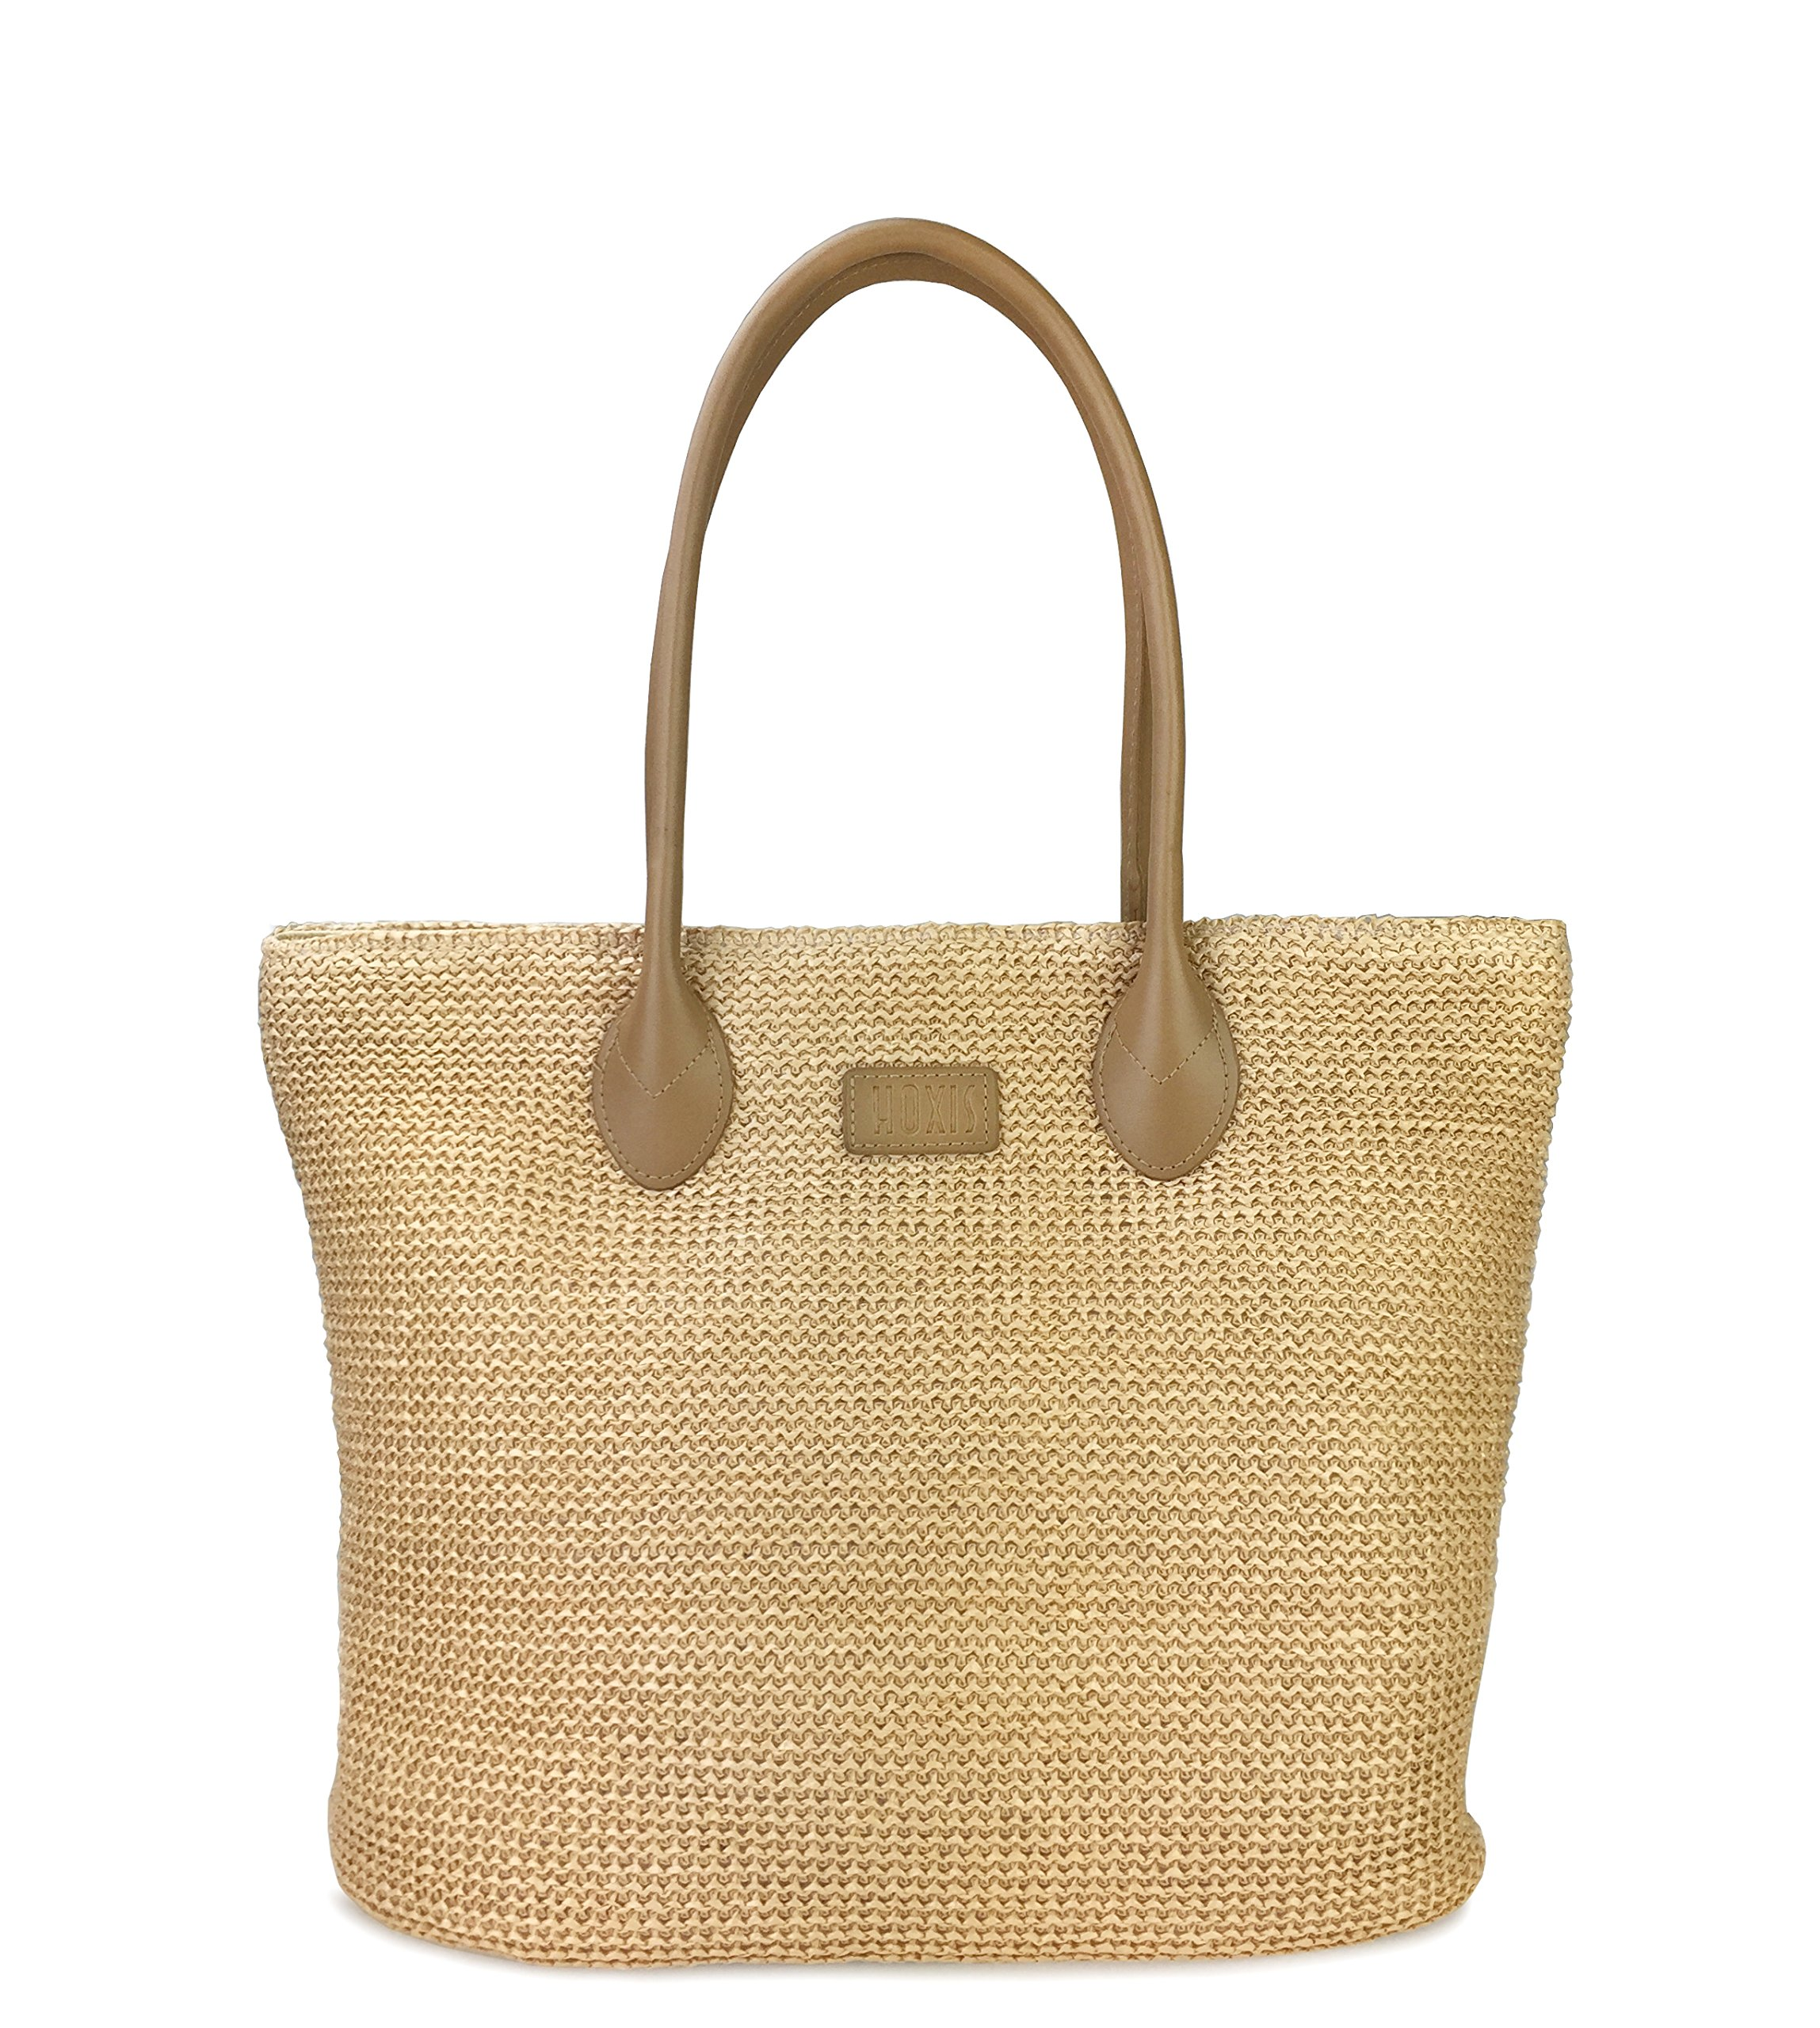 Hoxis Weekender Lightweight Synthetic Straw Shopper Tote Womens Shoulder Handbag (Brown)